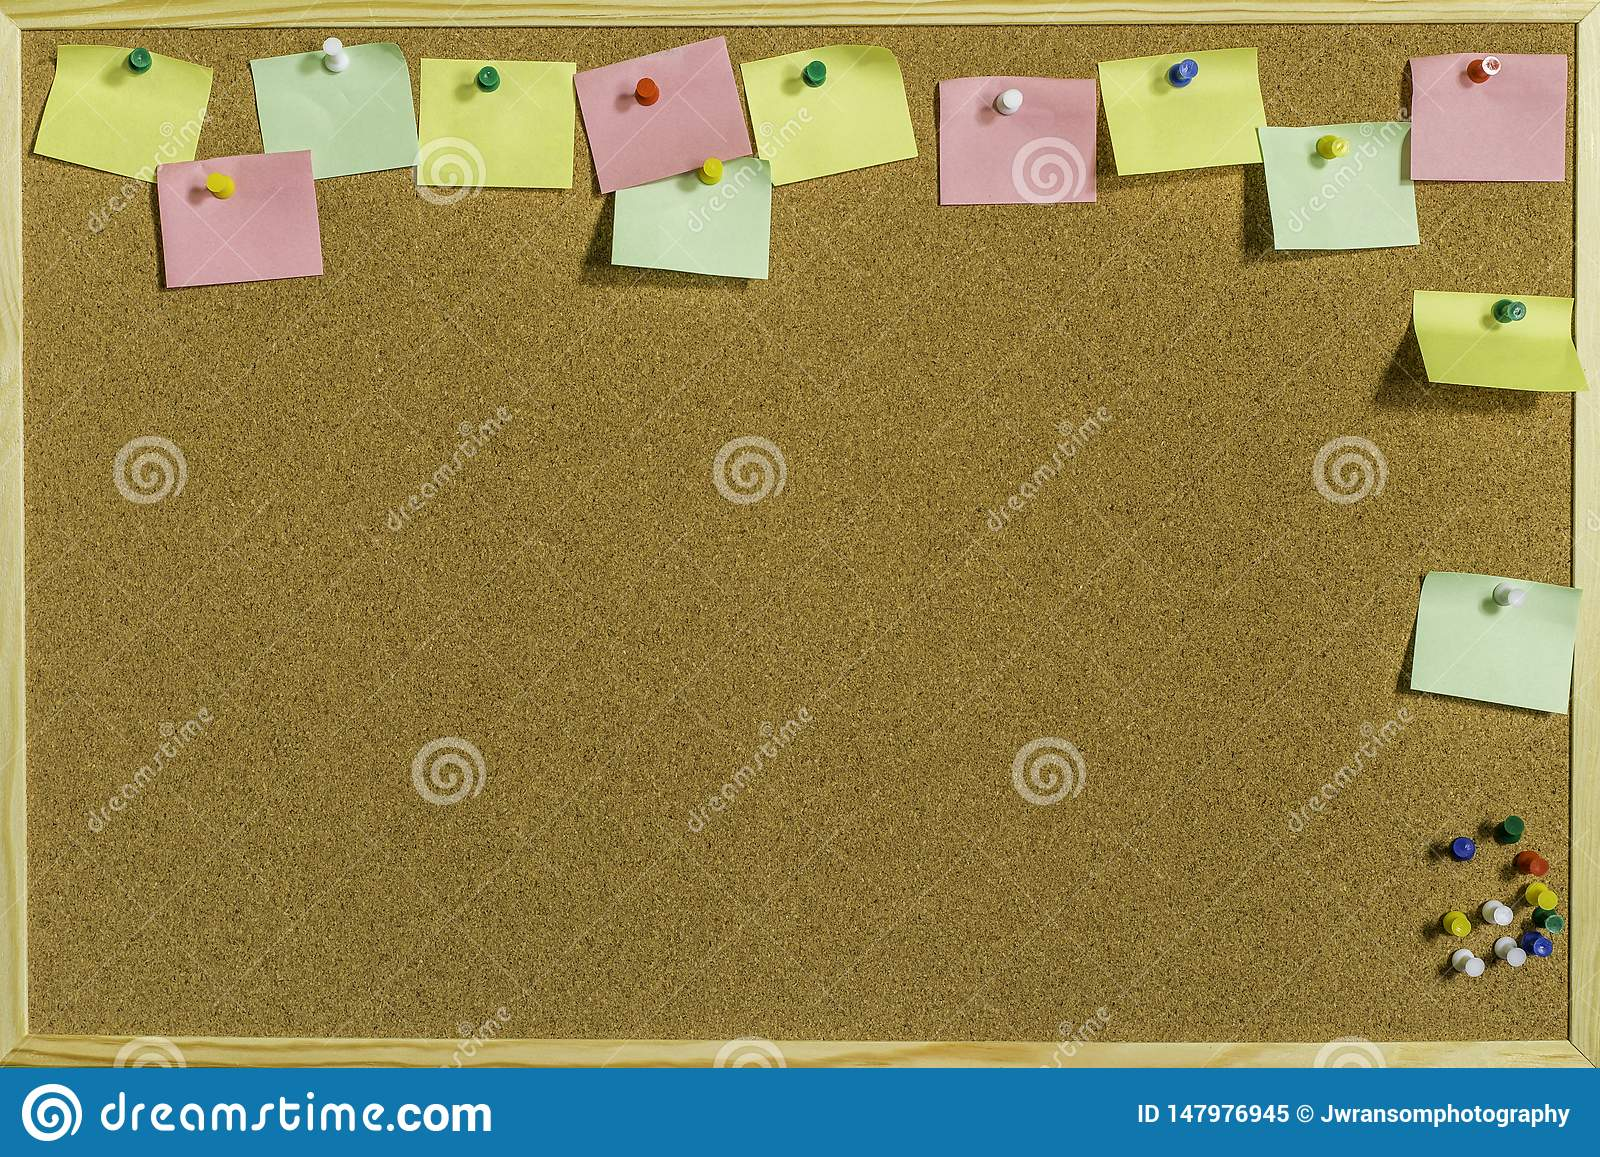 Pin Board With Space For coloré vos messages